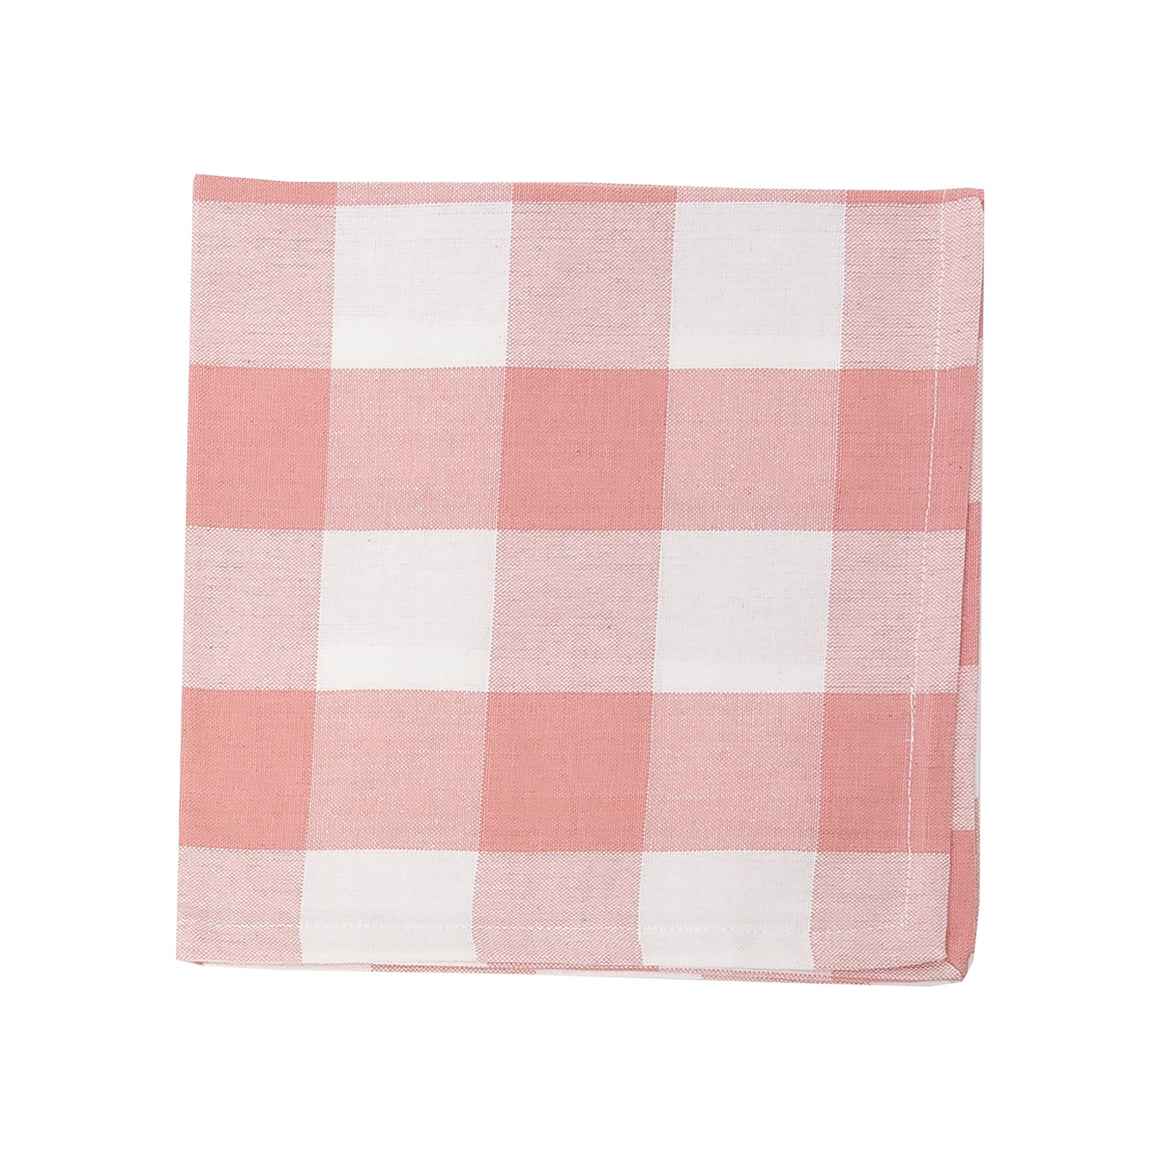 Peony Pink and White Buffalo Check Napkins - Set of 4